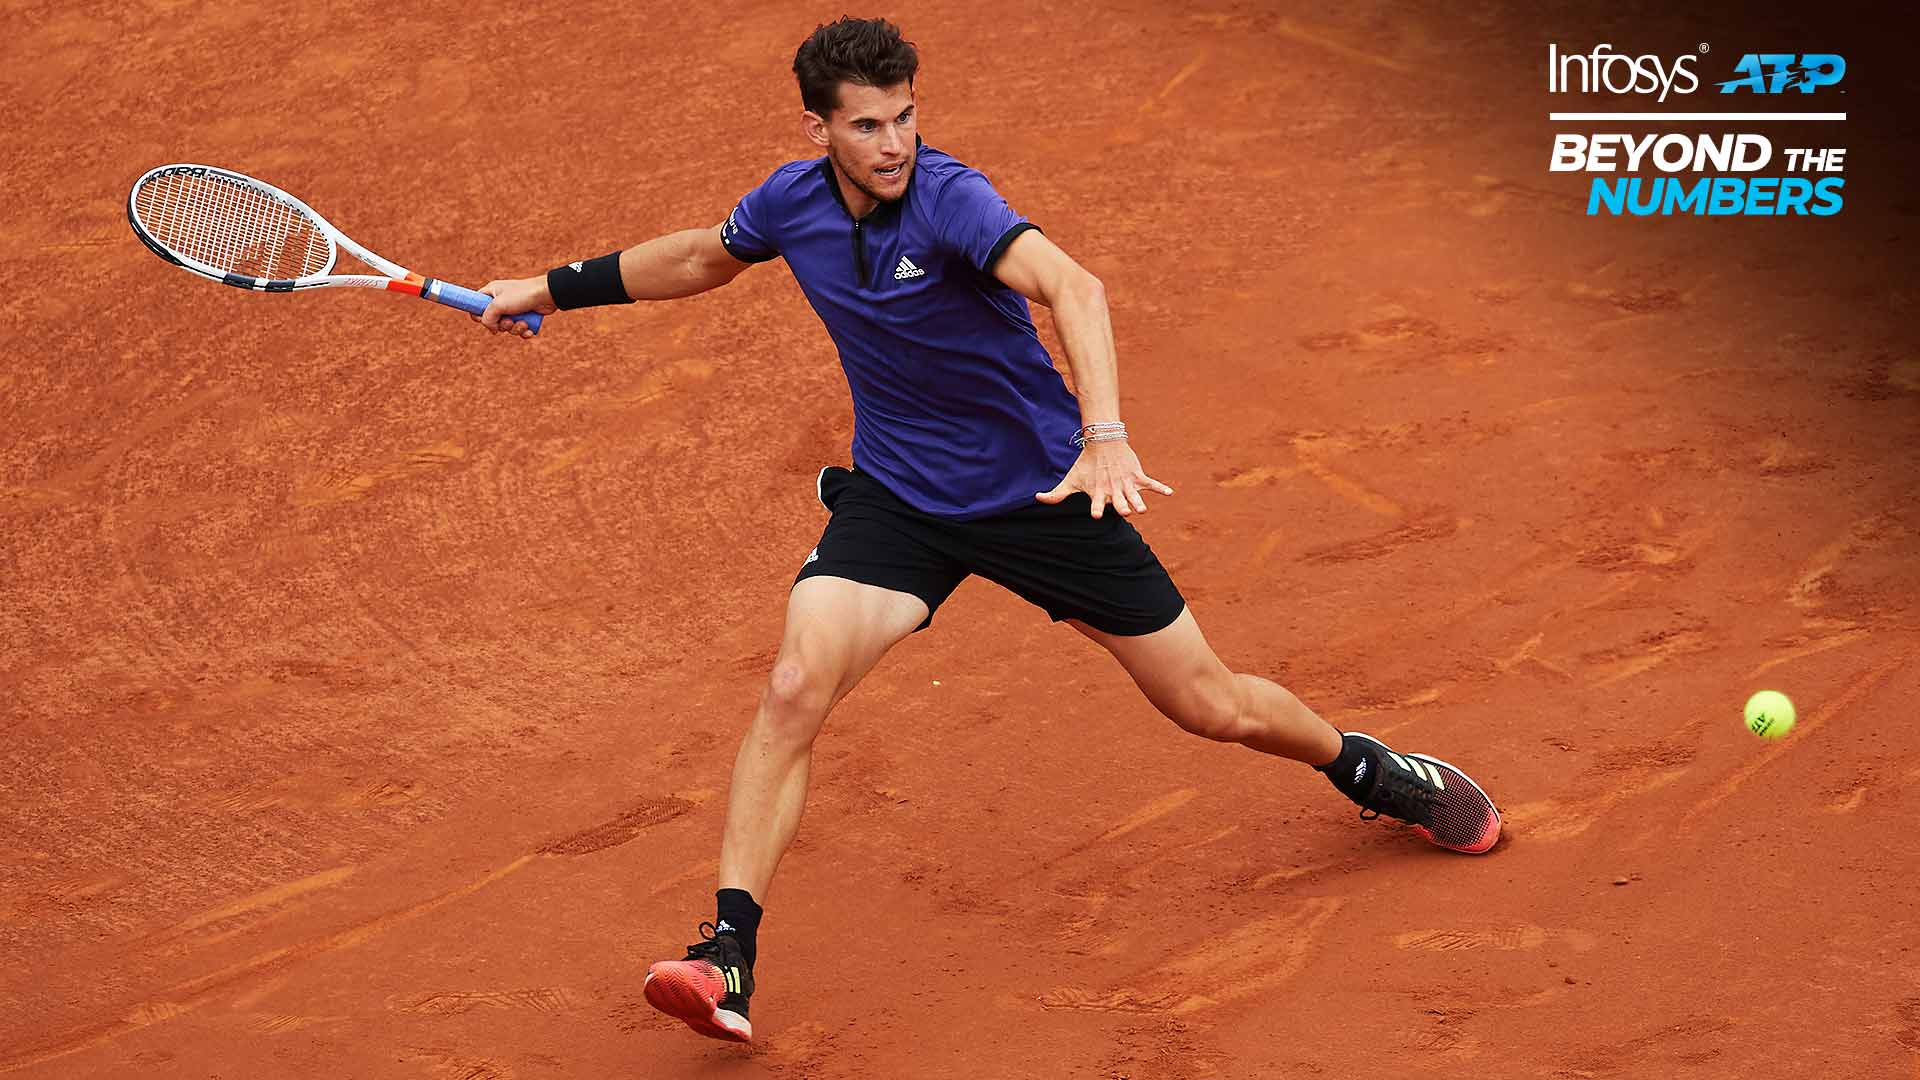 Dominic Thiem wins his biggest clay-court title yet at the Barcelona Open Banc Sabadell